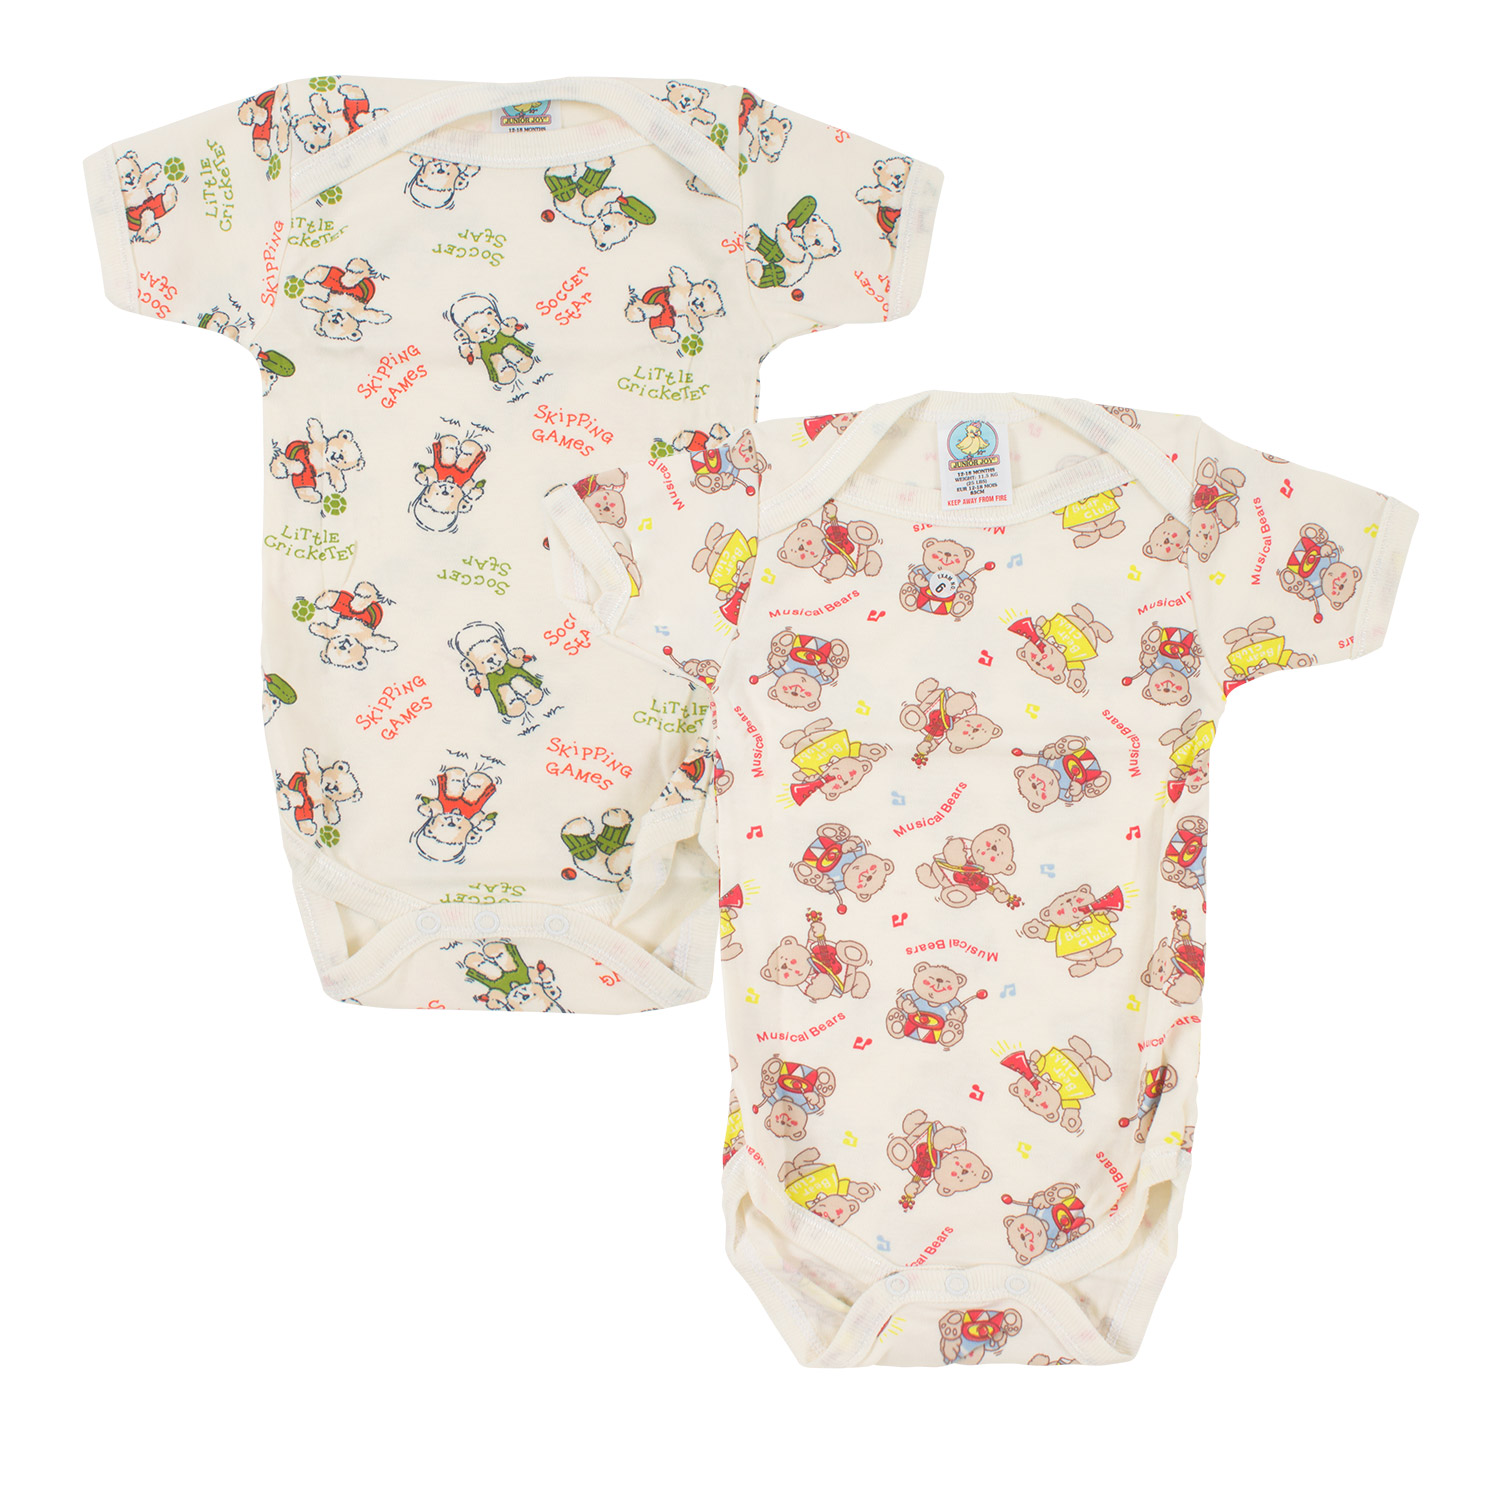 Junior Joy Short Sleeve Bodysuit - Printed